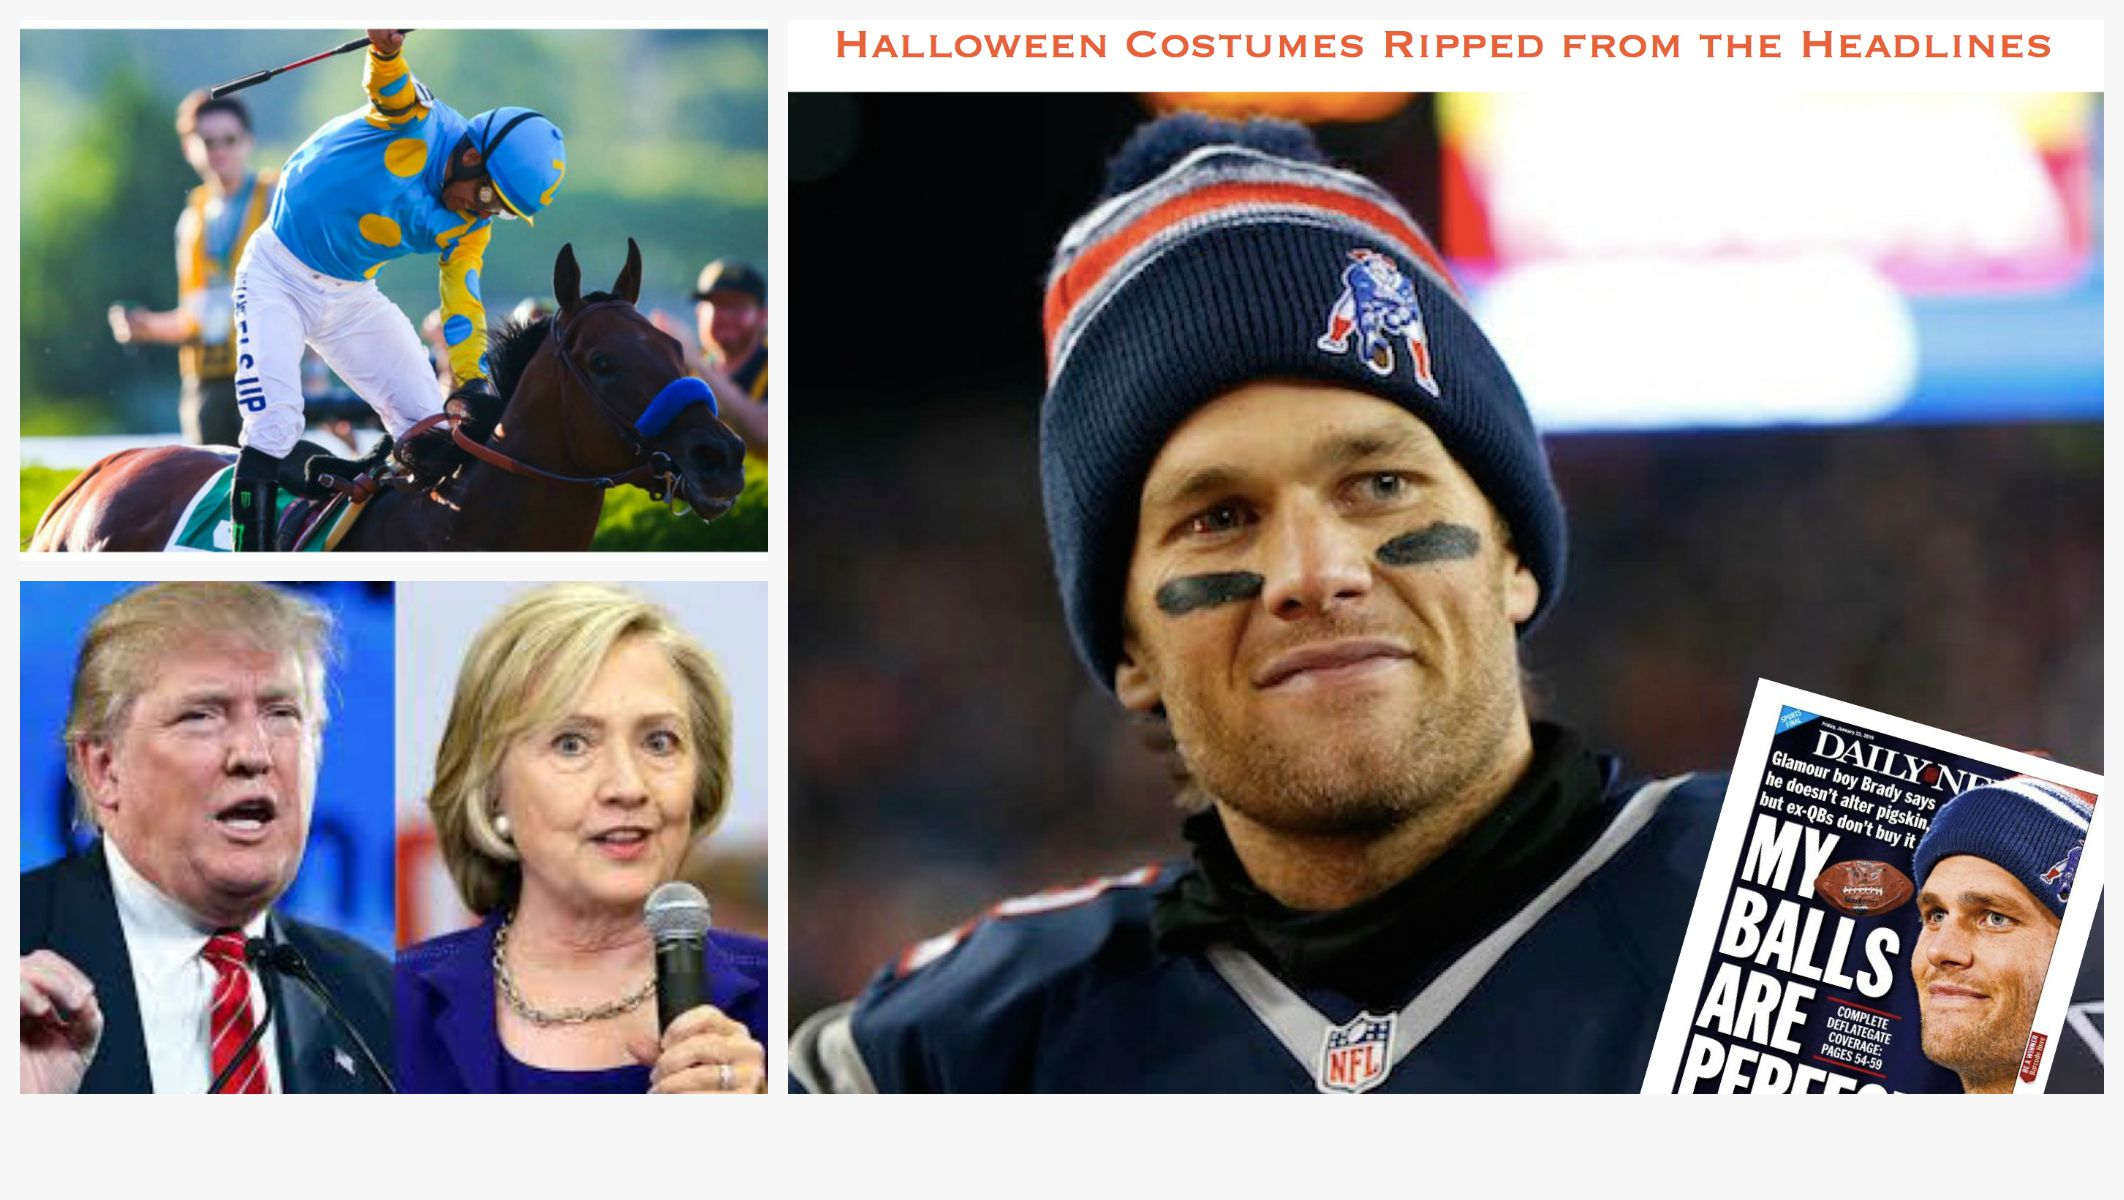 Halloween Costumes Ripped from the Headlines